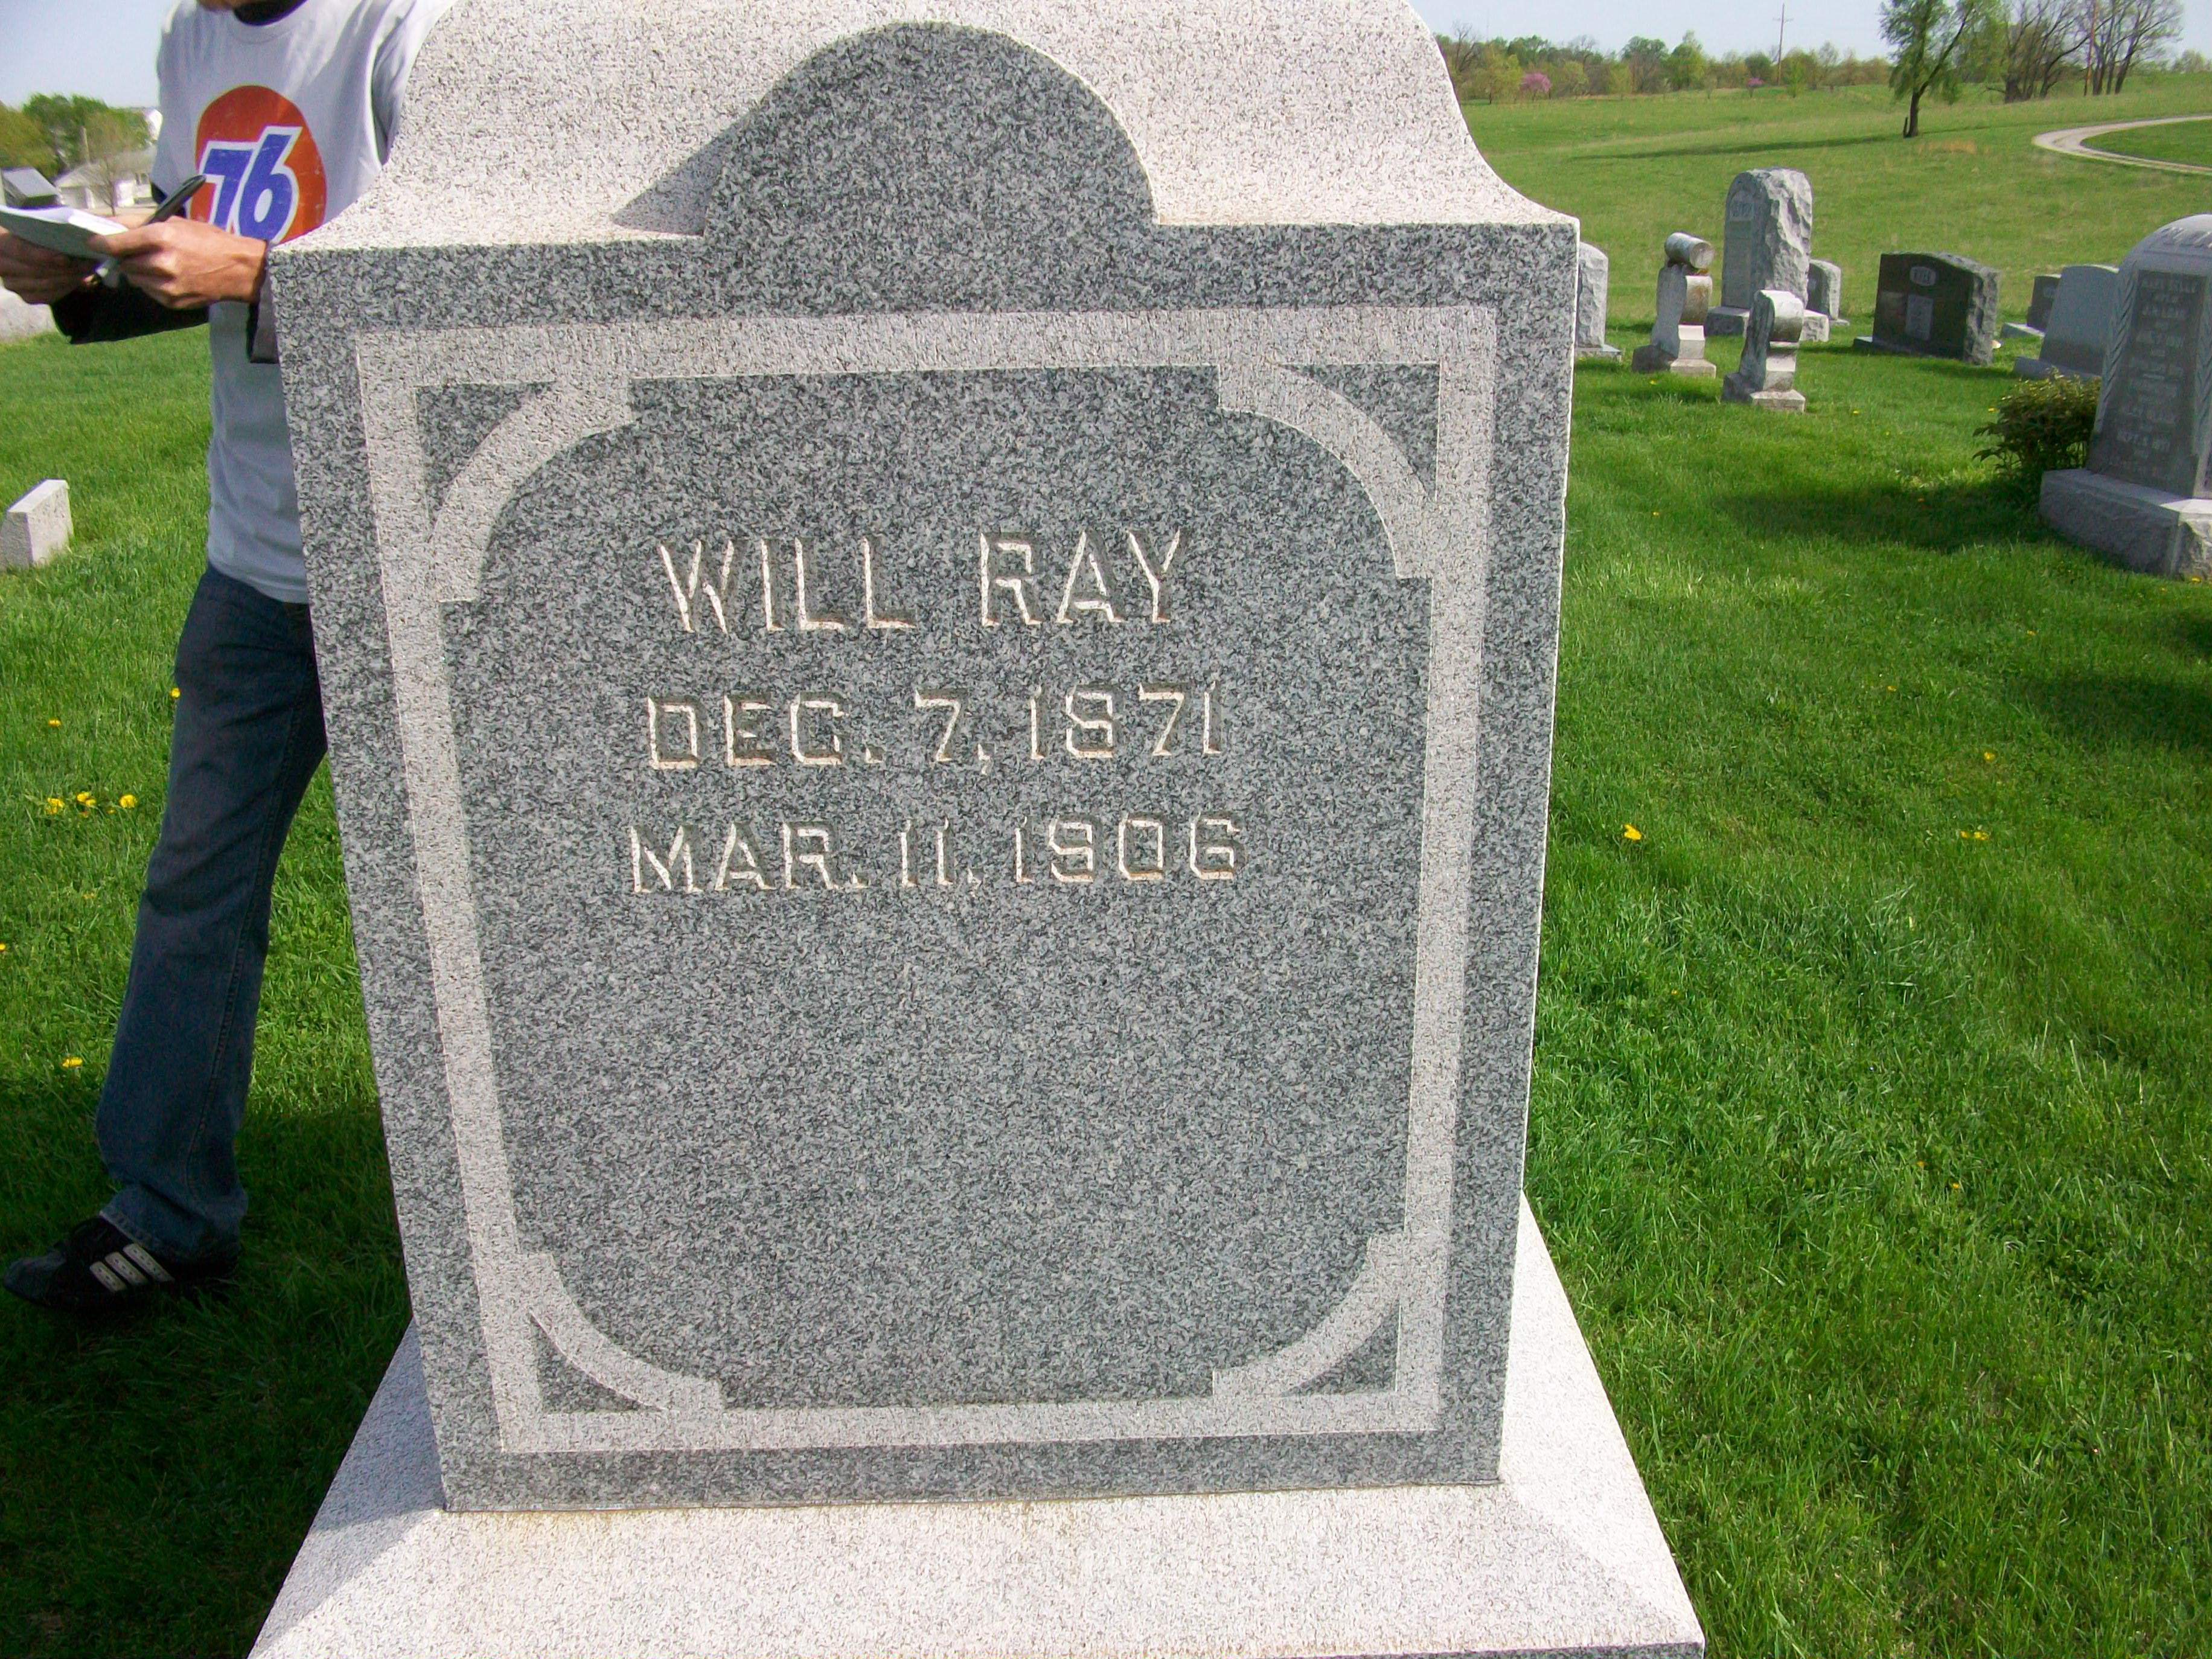 William George Ray